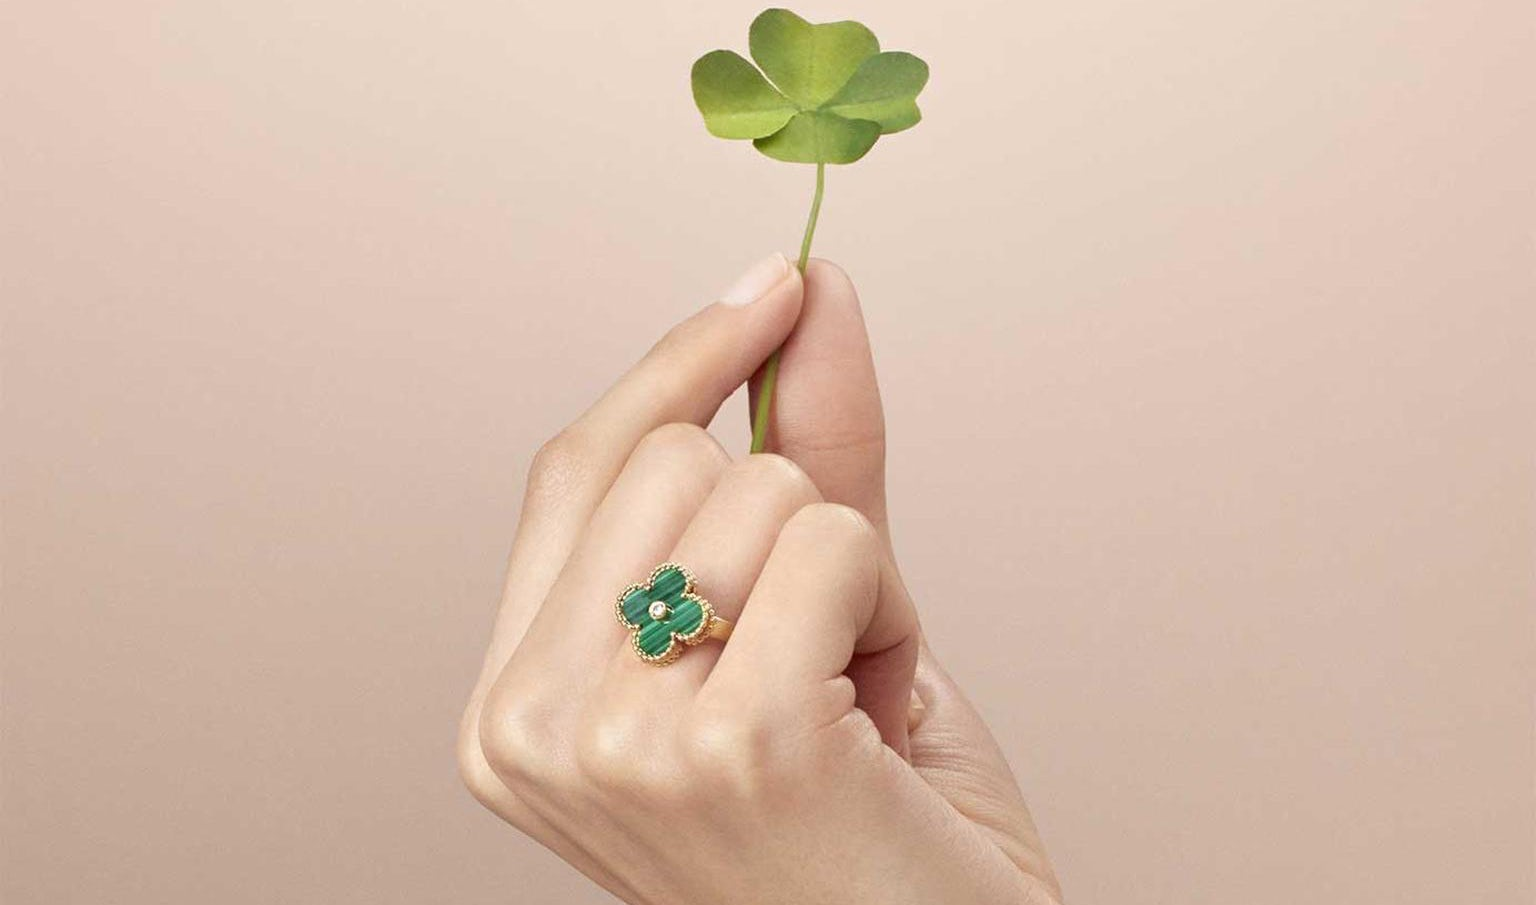 Van Cleef & Arpels is fighting in Chinese court to protect its signature clover shape. Van Cleef & Arpels.